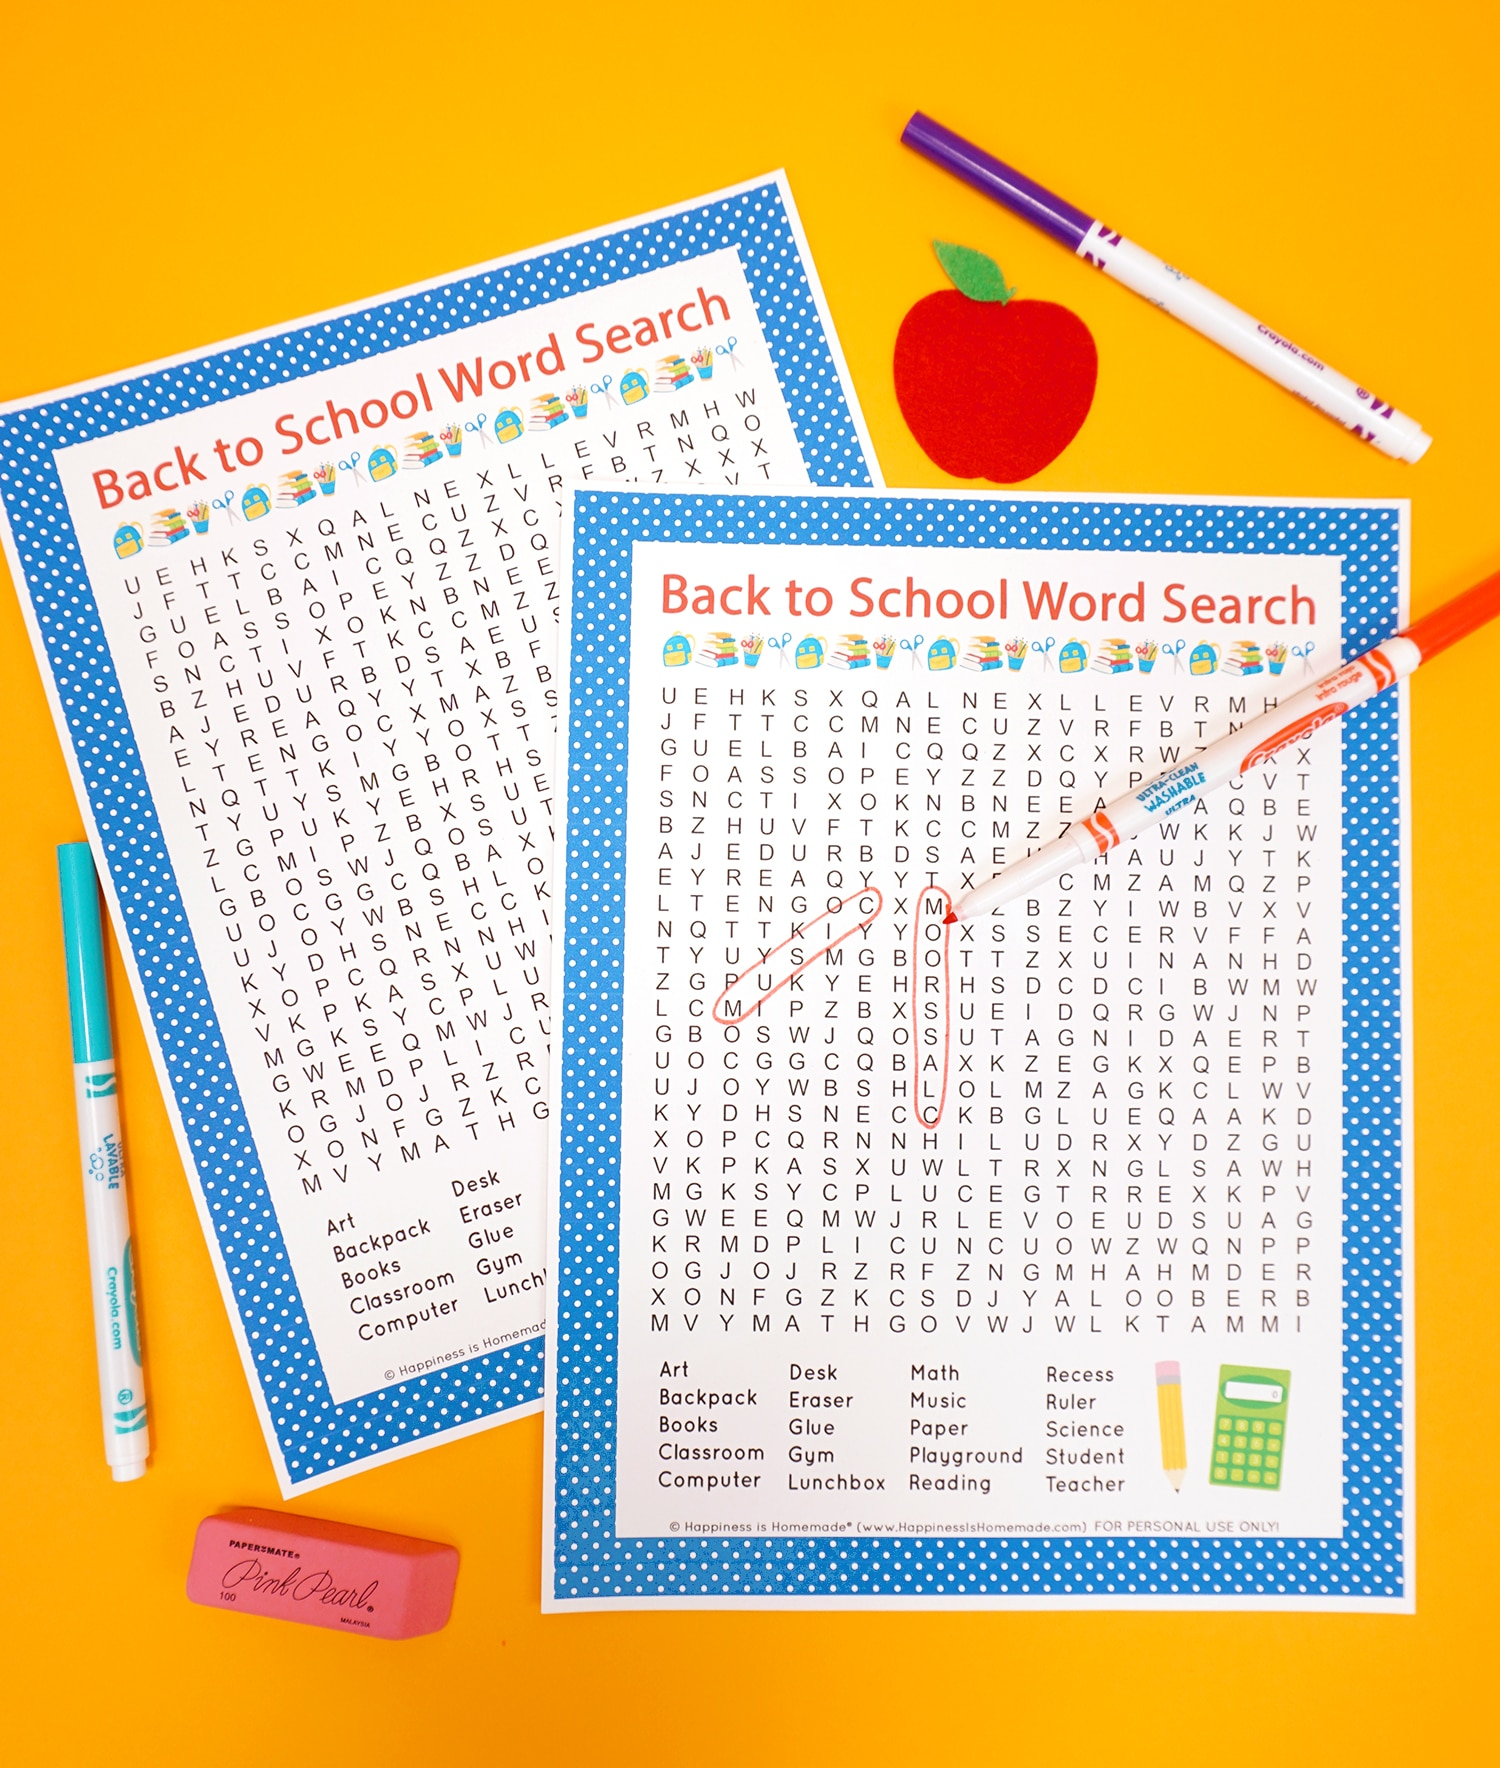 photograph about School Word Search Printable known as Back again in direction of College Term Glance Printable - Pleasure is Home made